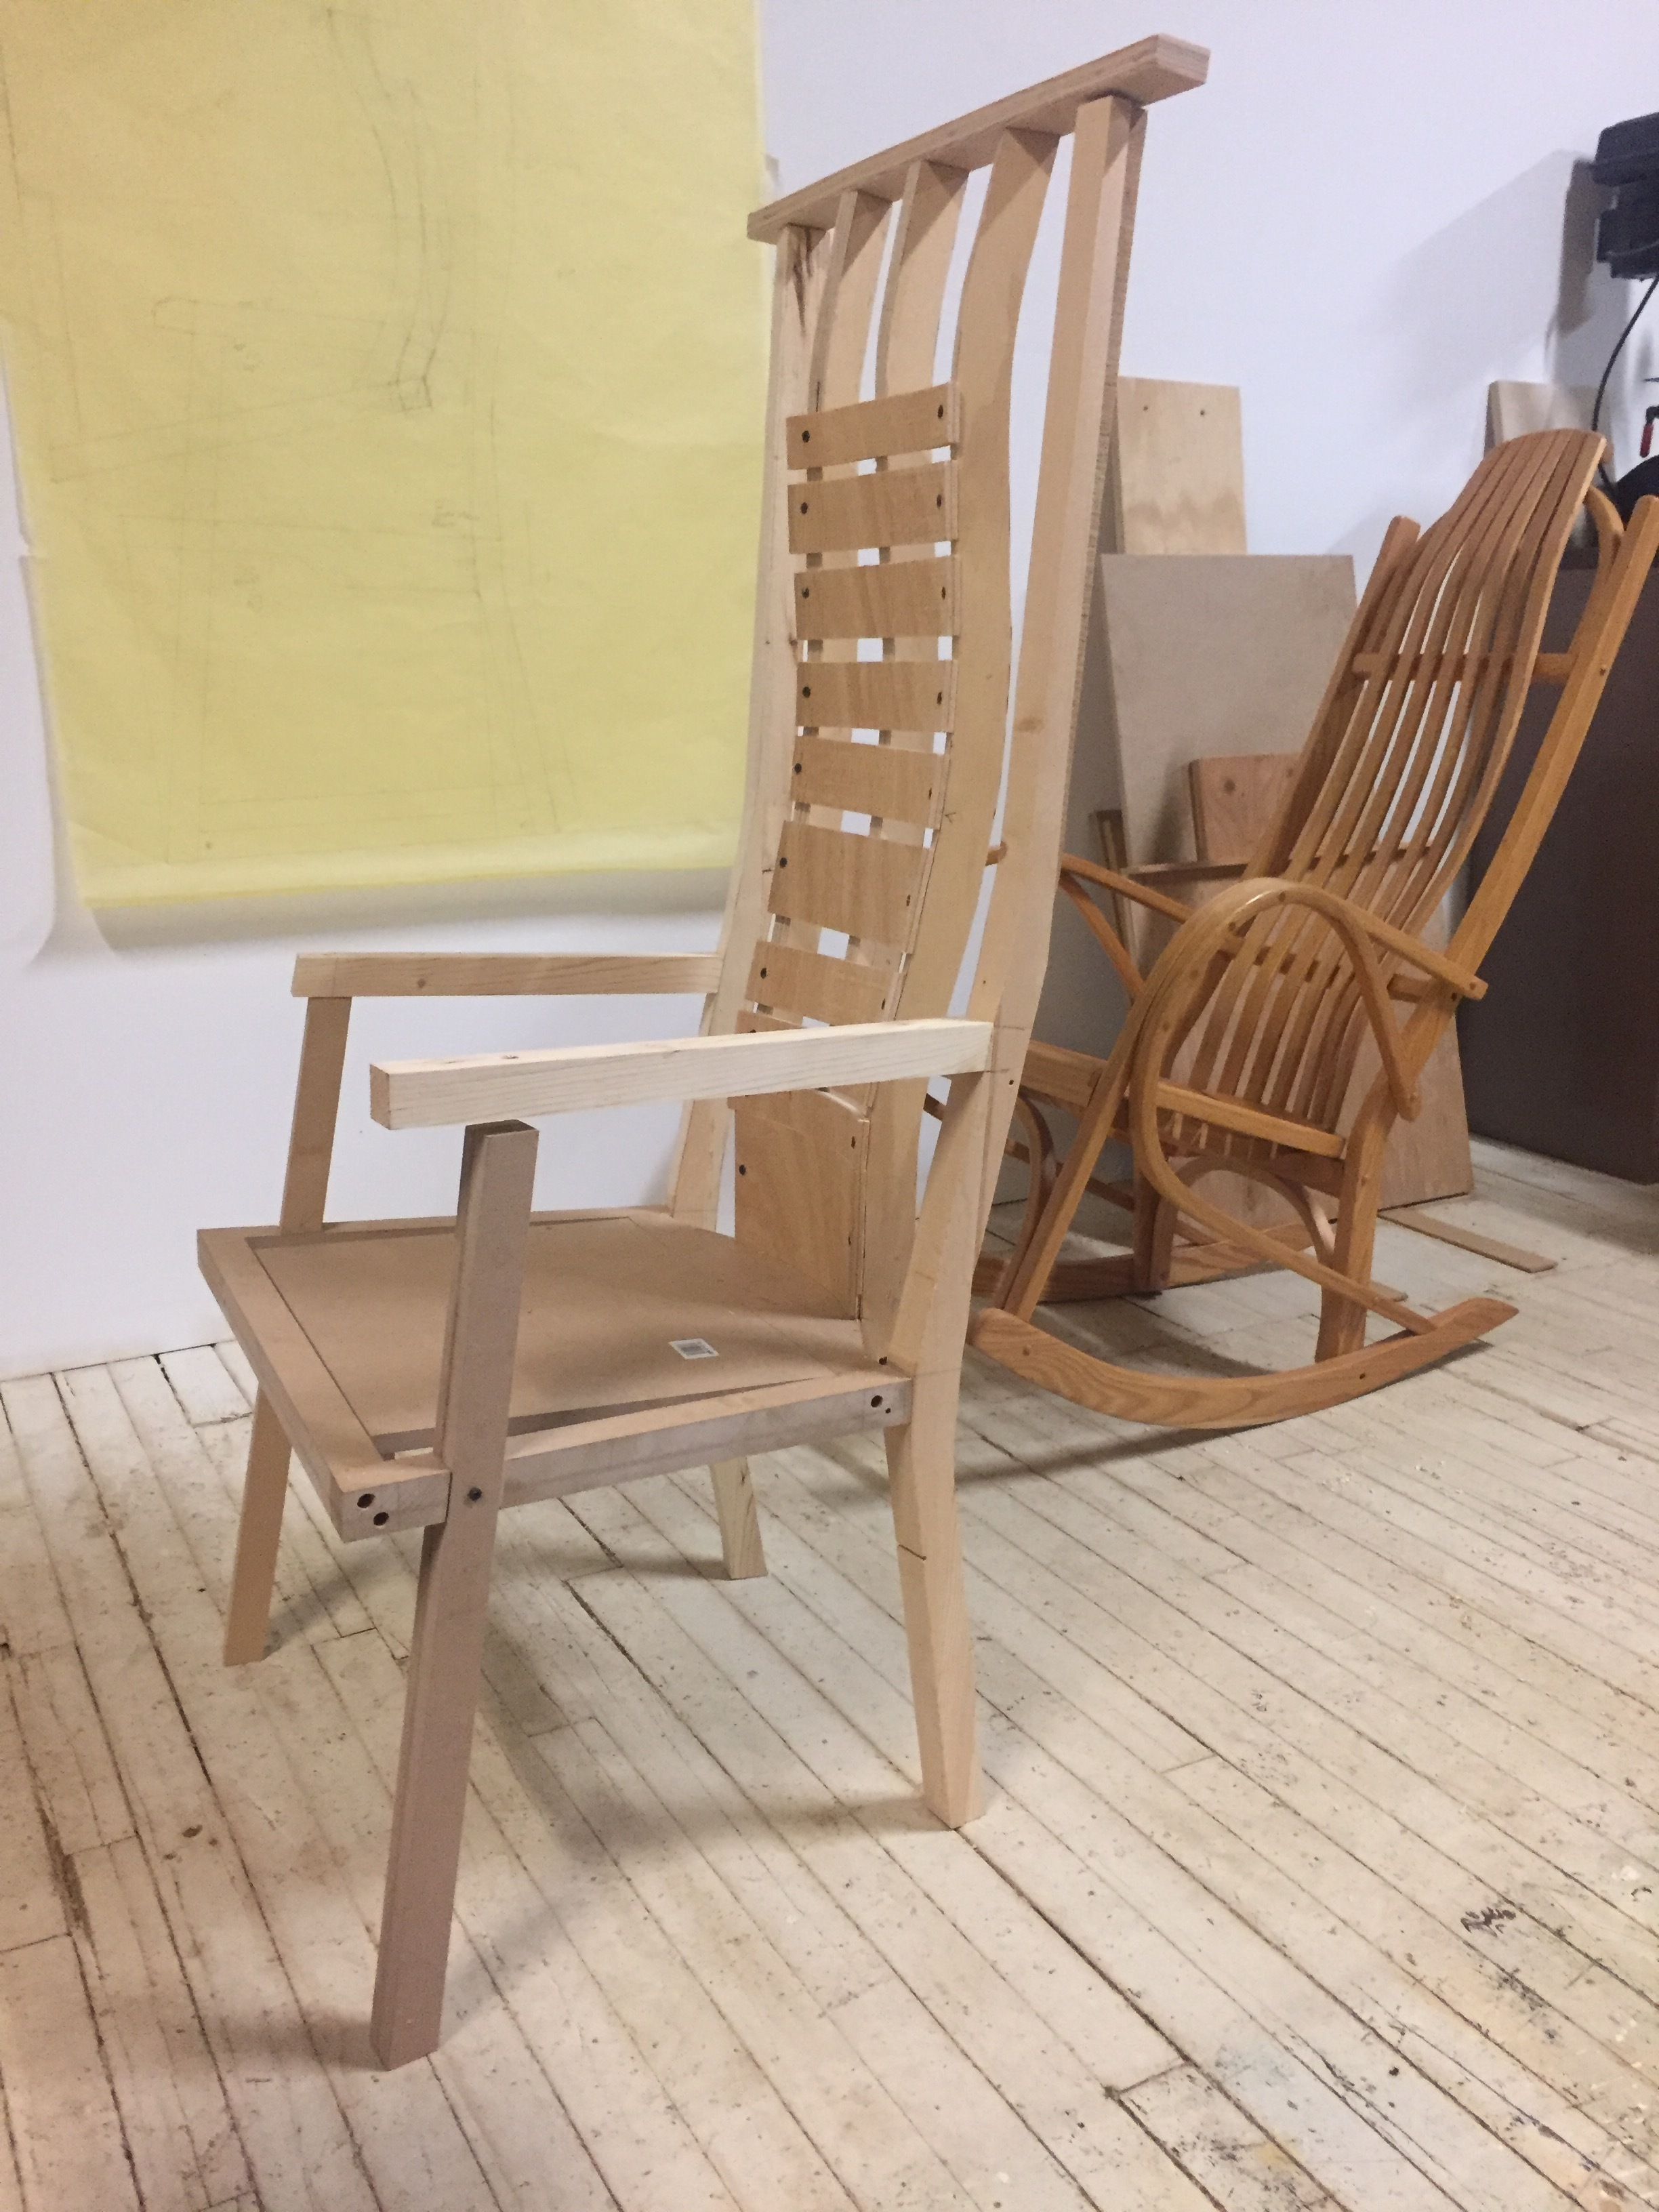 This is a mock up of the chair - inspired by the rocking chair behind it. (The horizontal boards on the back of the chair are temporary - for holding the curved vertical boards.)